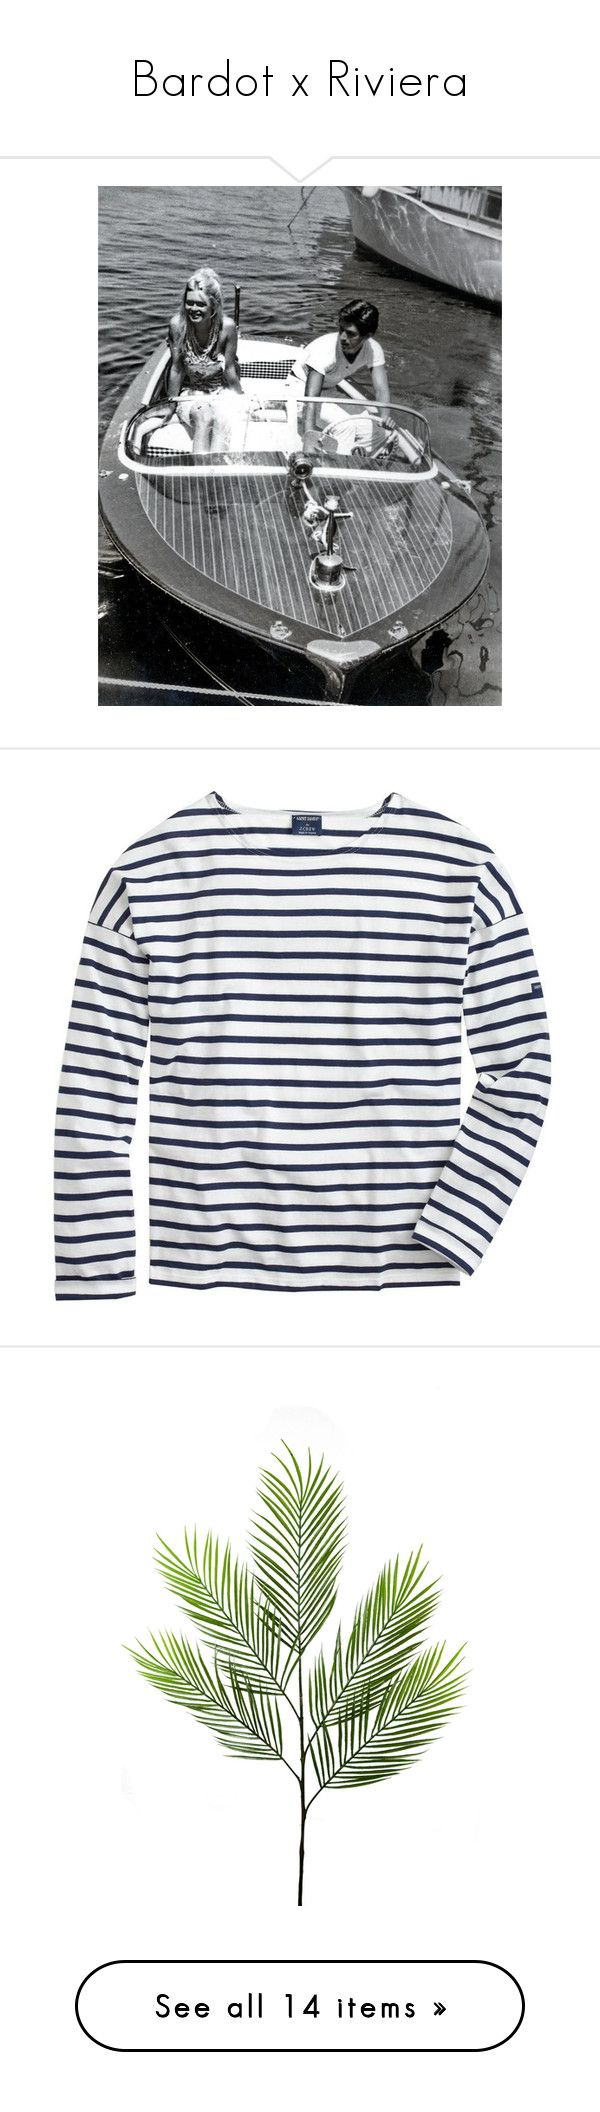 """""""Bardot x Riviera"""" by thewhiskeyfox ❤ liked on Polyvore featuring backgrounds, bardot, photos, sets, tops, shirts, long sleeves, stripes, nautical striped shirt and white long sleeve top"""